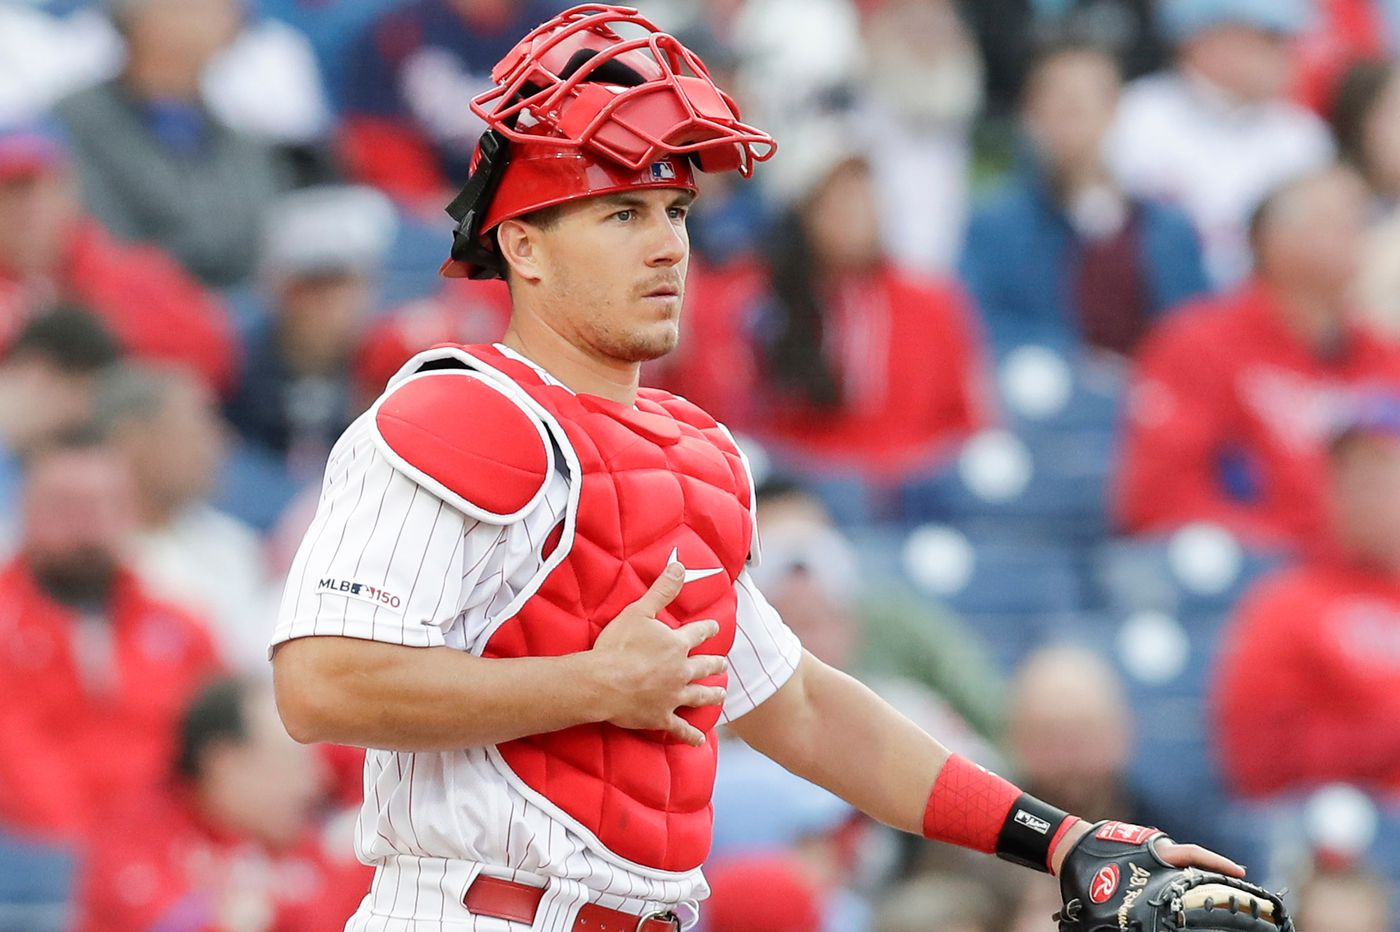 Phillies catcher J.T. Realmuto cares less about being declared the best in baseball than about simply getting better | Bob Brookover